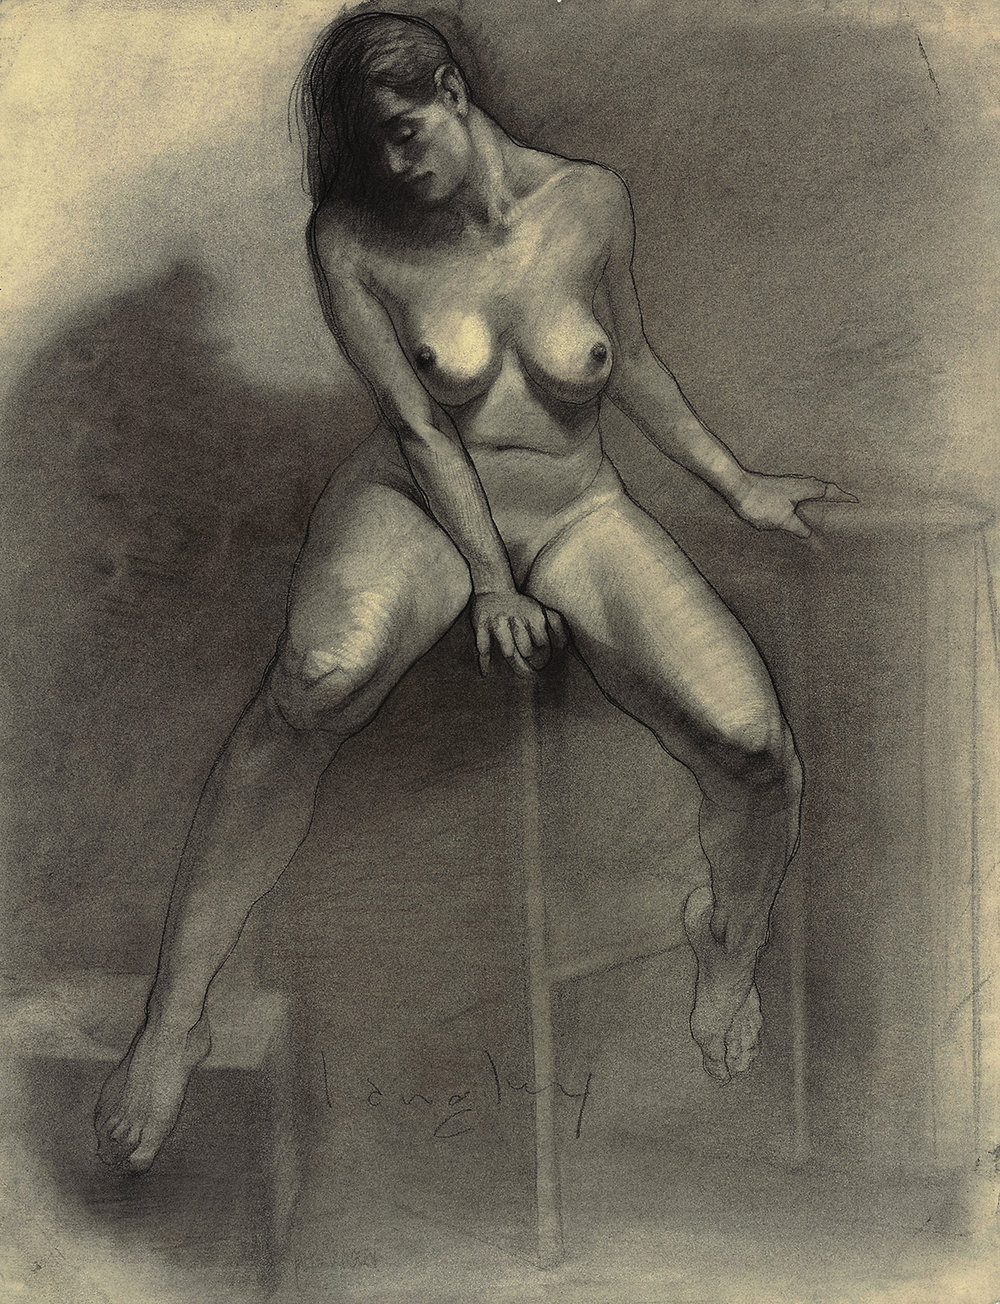 langley seated nude woman frontal.jpg